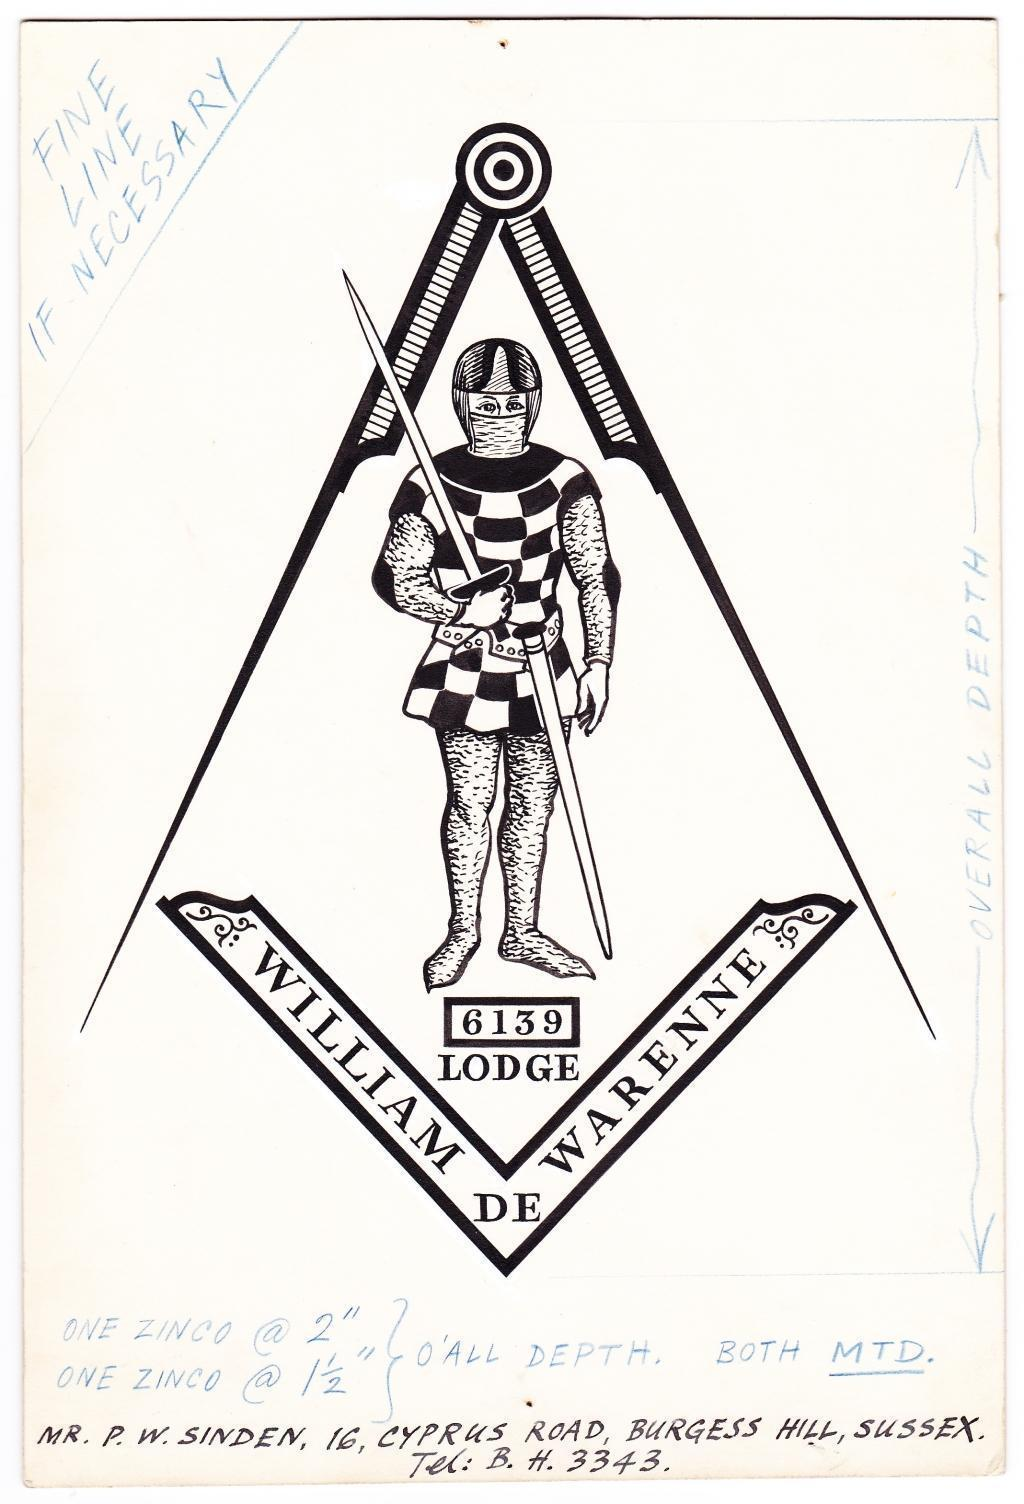 Original Lodge logo drawing.jpg